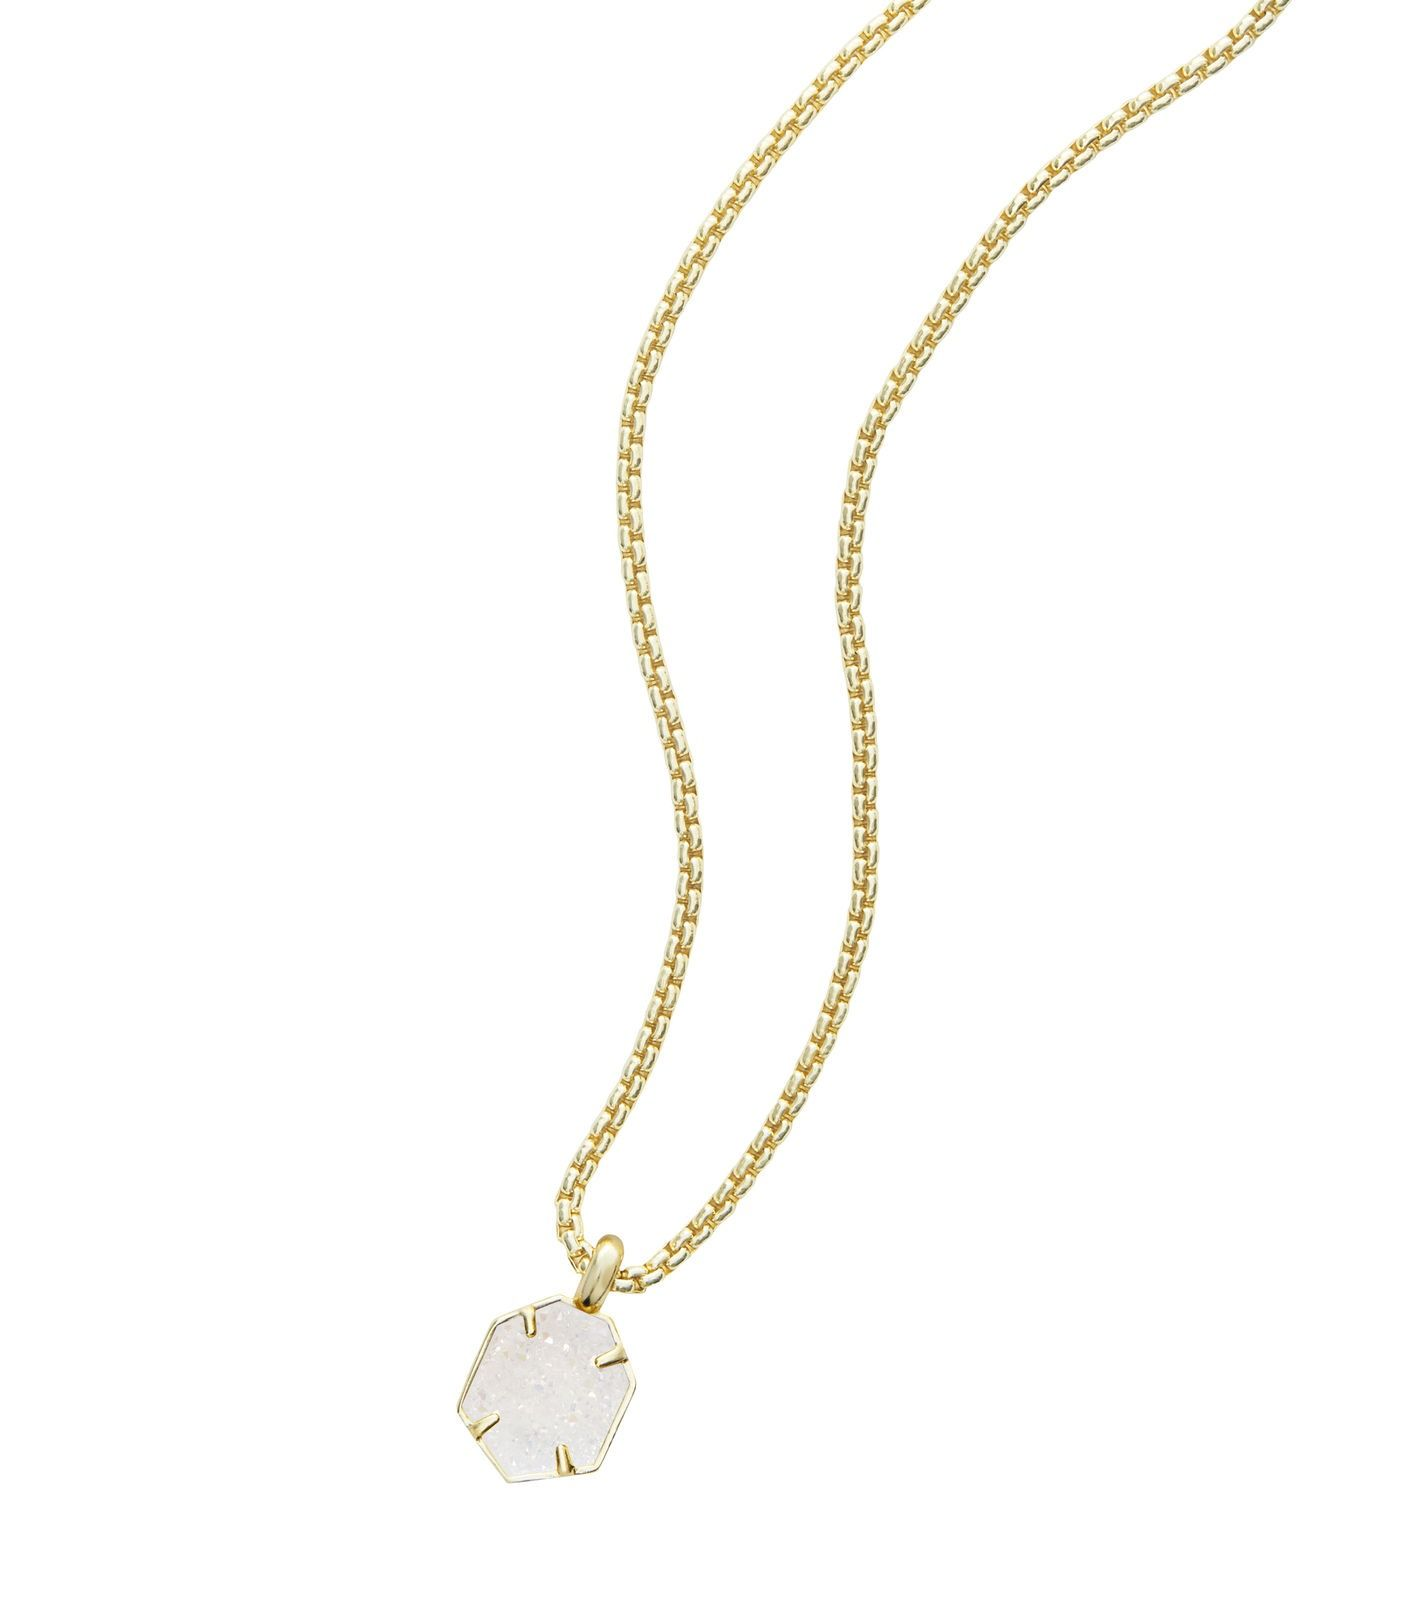 Kendra scott teo pendant necklace in iridescent drusy and gold plated